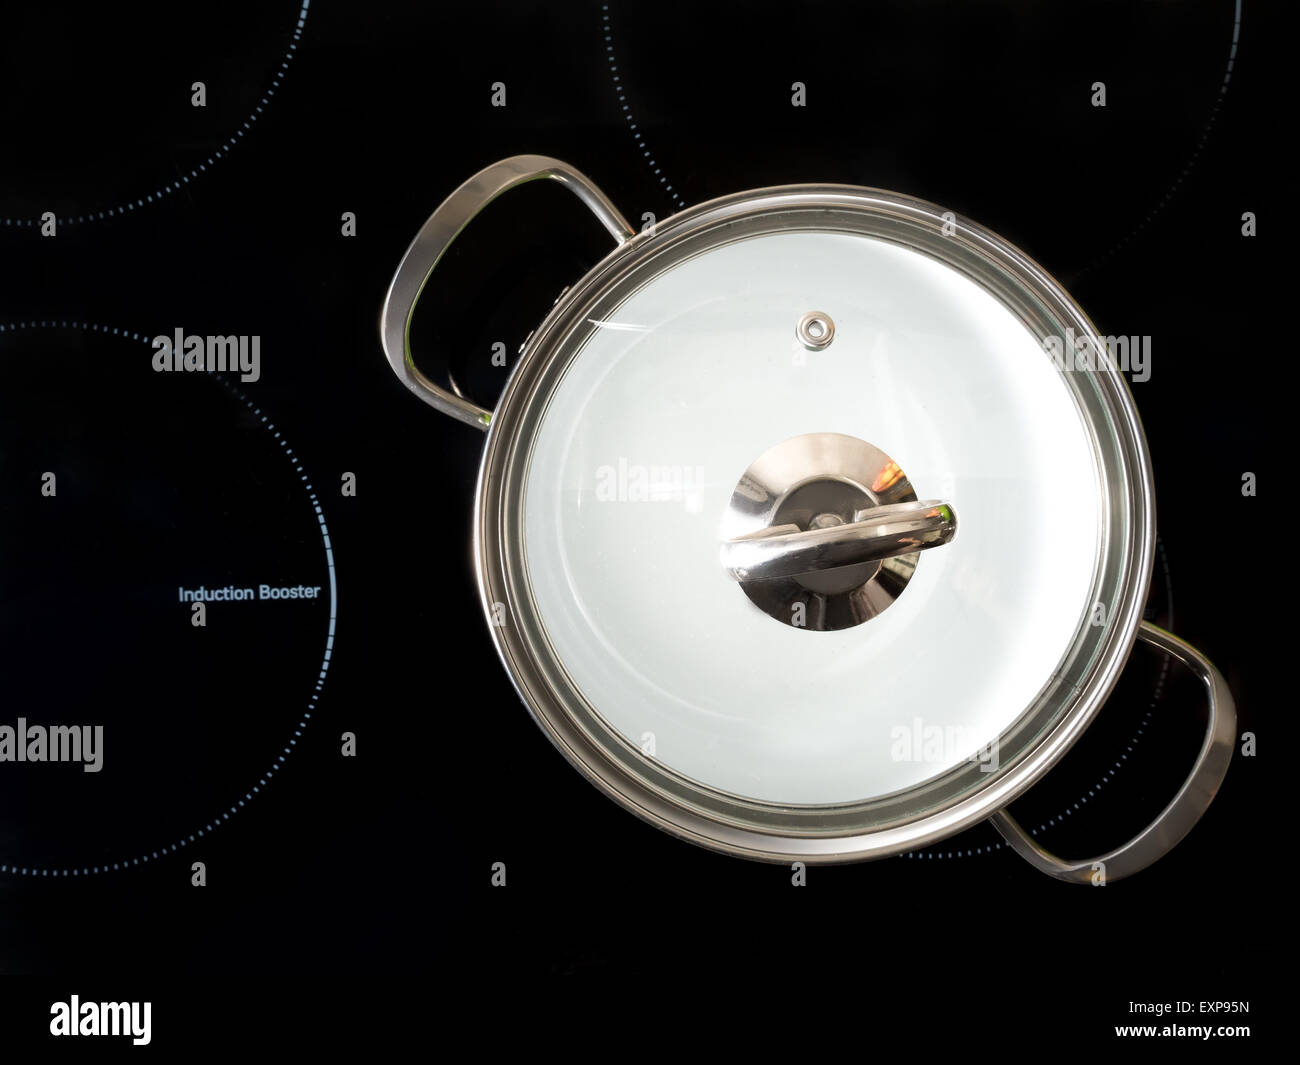 Stewpot on black induction cooker shot from above - Stock Image